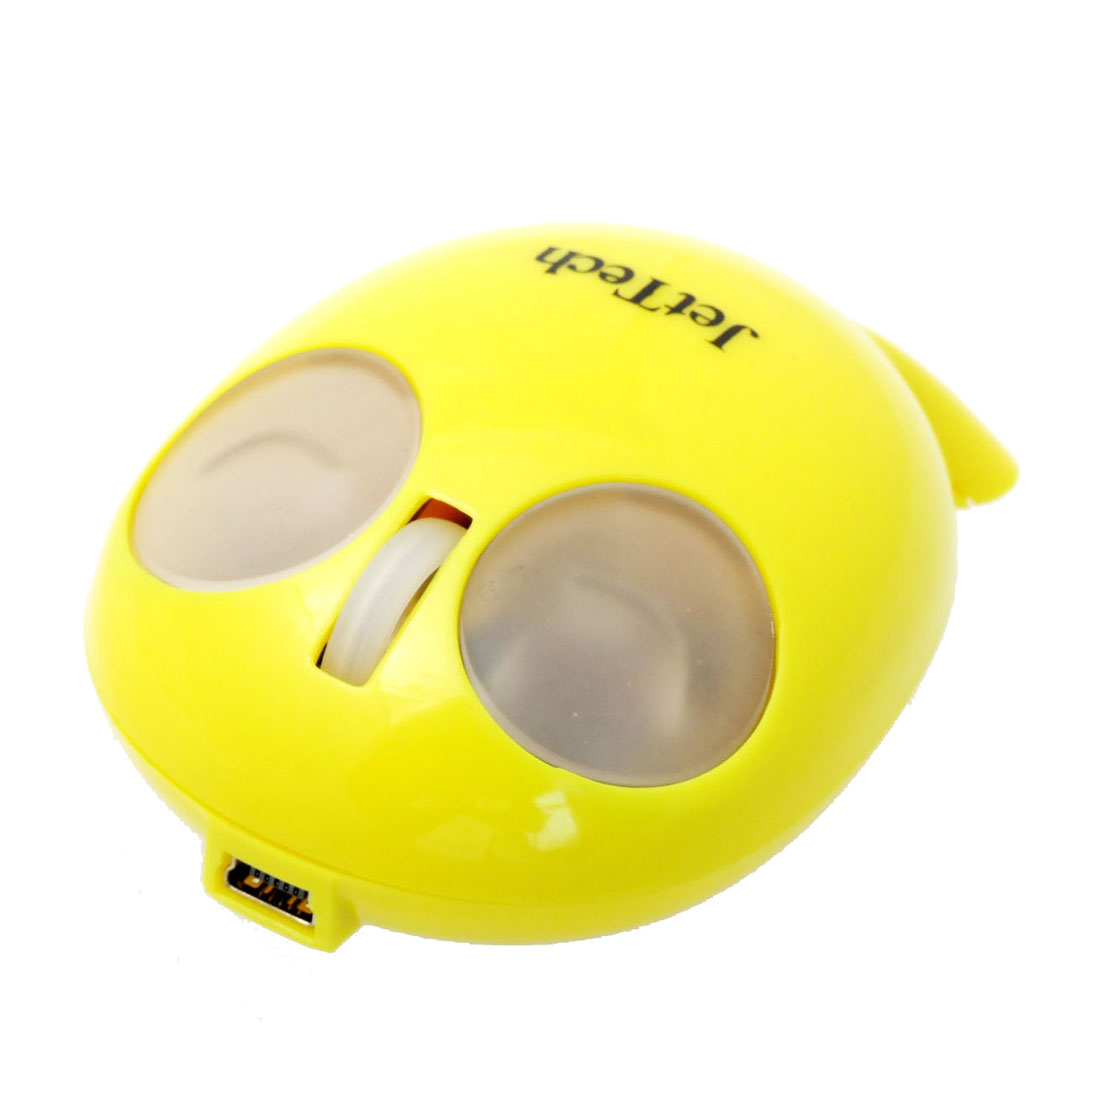 Mini USB + PS/2 Optical Mouse for Notebook 800DPI Yellow